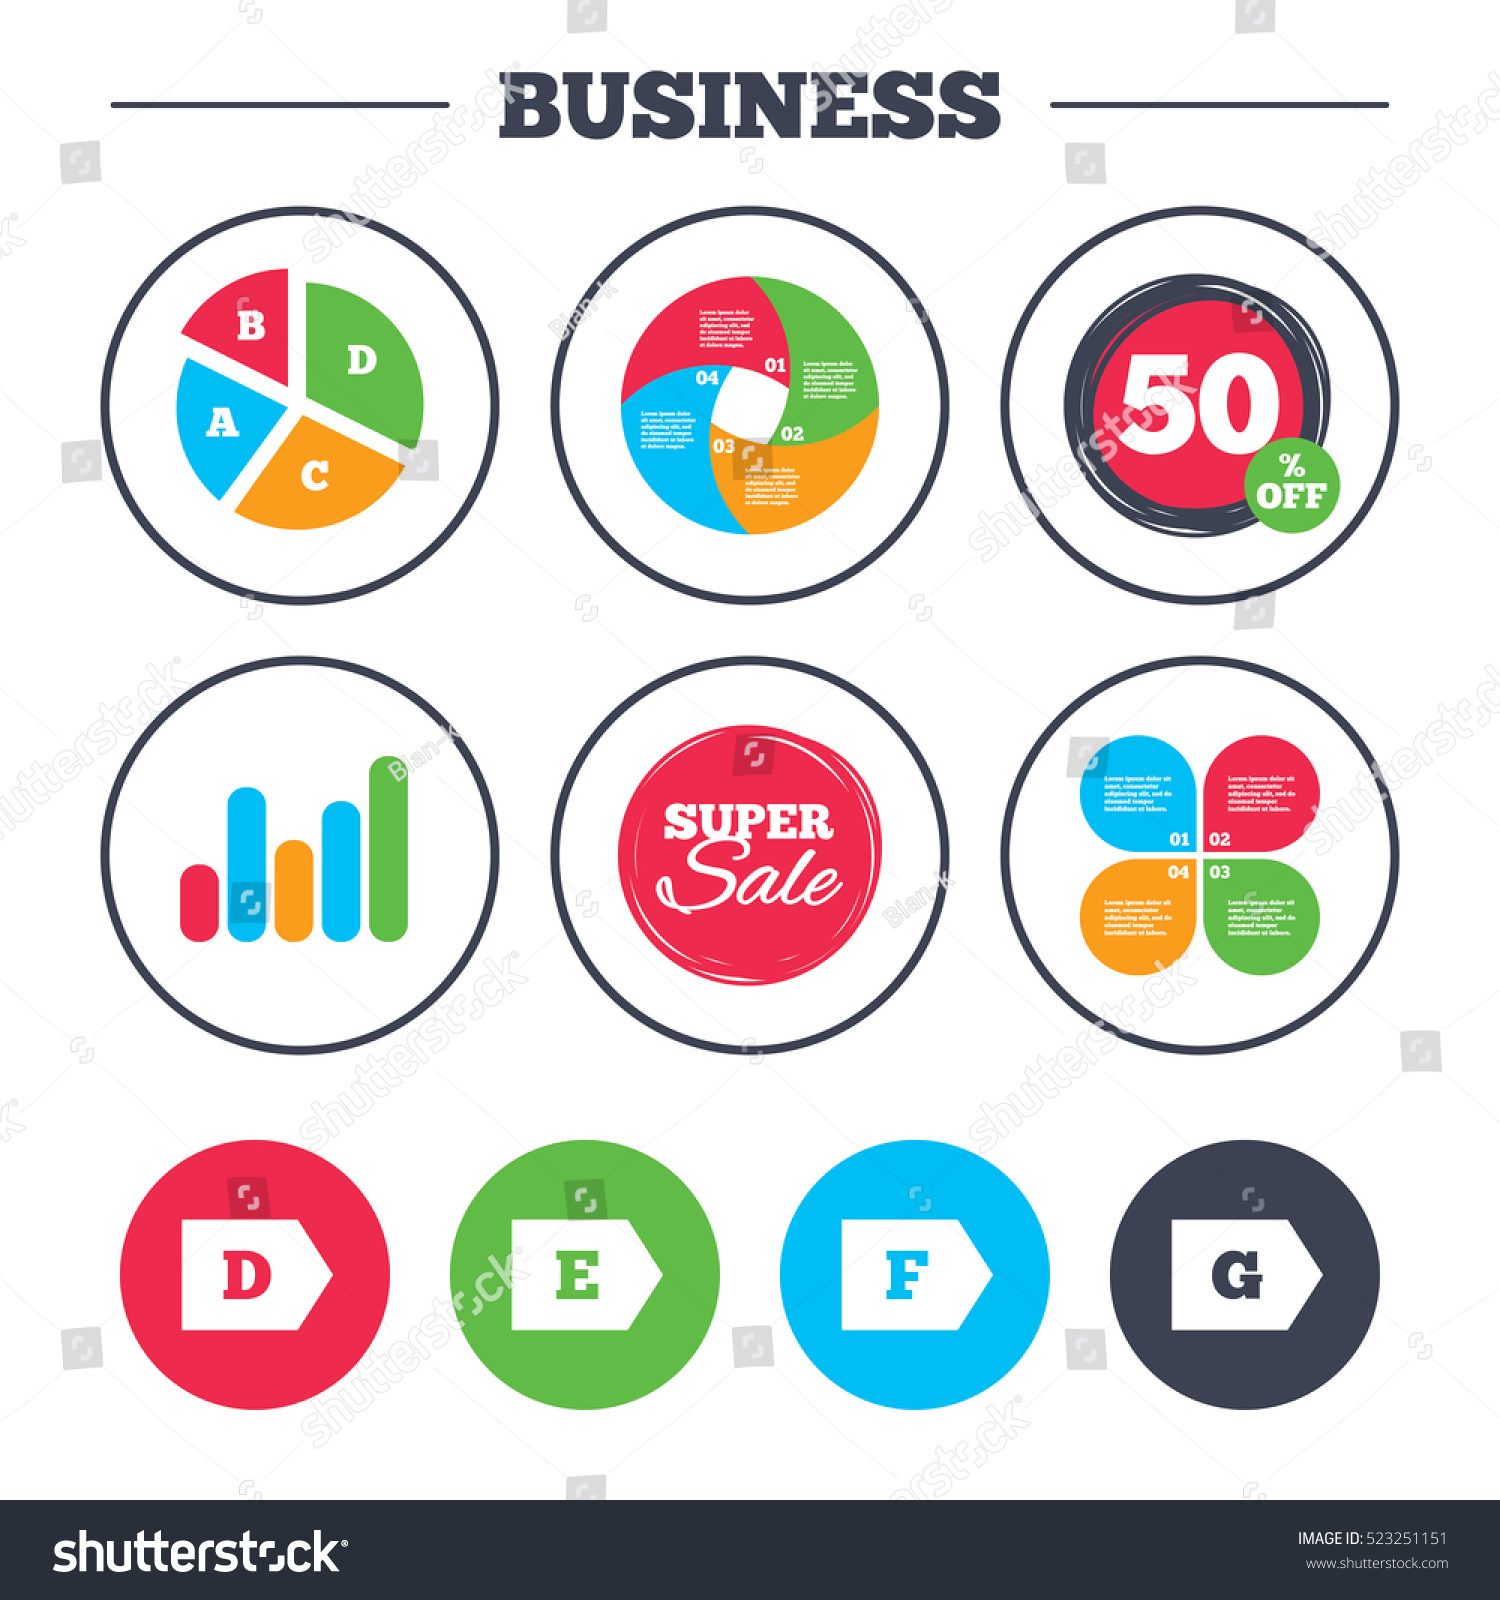 Business Pie Chart Growth Graph Energy Stock Illustration 523251151